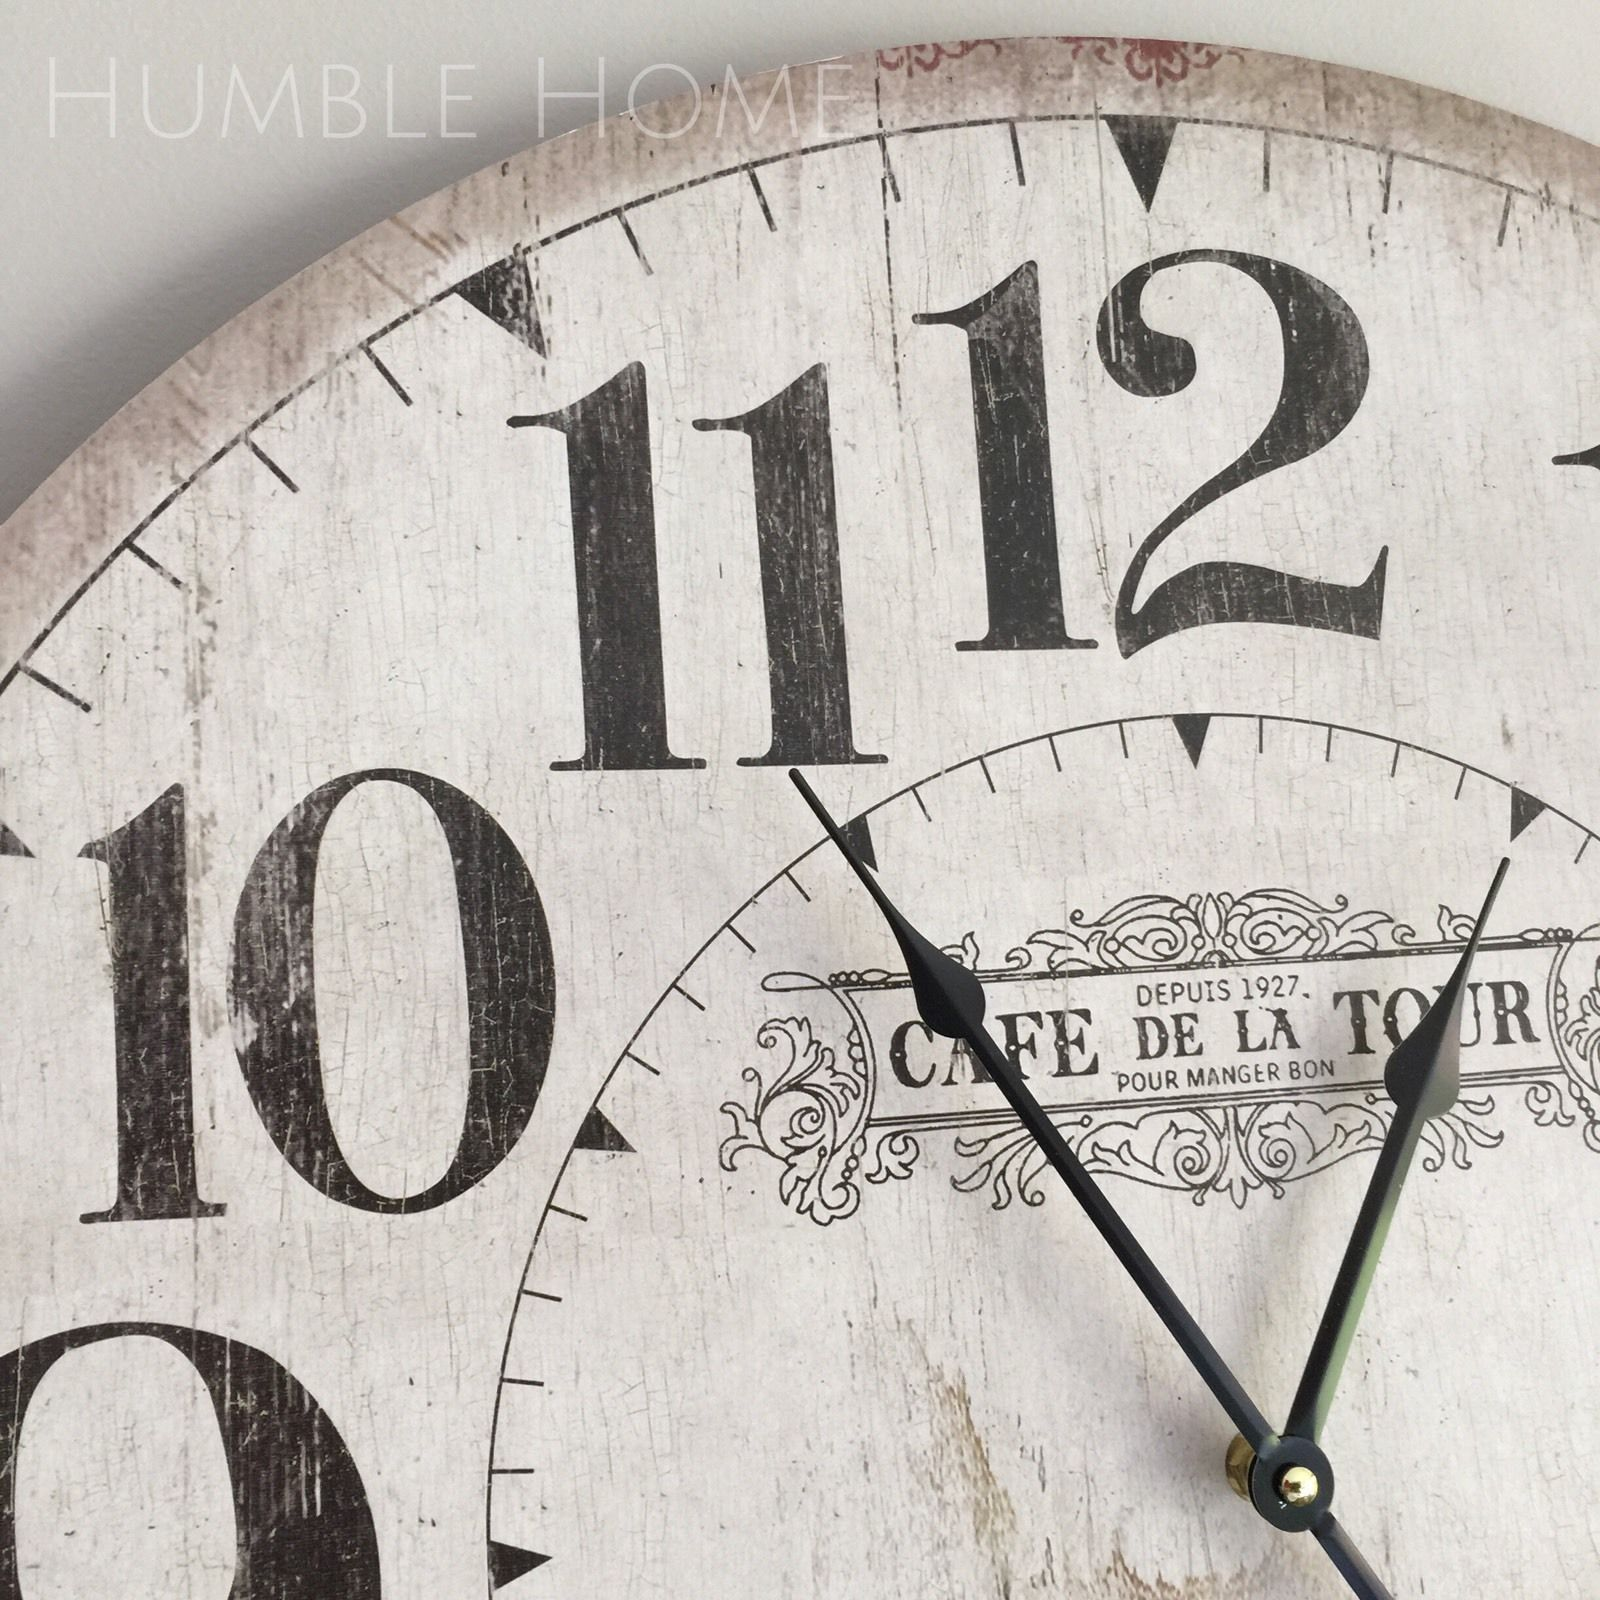 Delightful Wall Clocks For Kitchen Modern #2: Large-60cm-Vintage-Rustic-Look-White-Wall-ClockFrench-ProvincialHamptons-141944025451-3.jpg